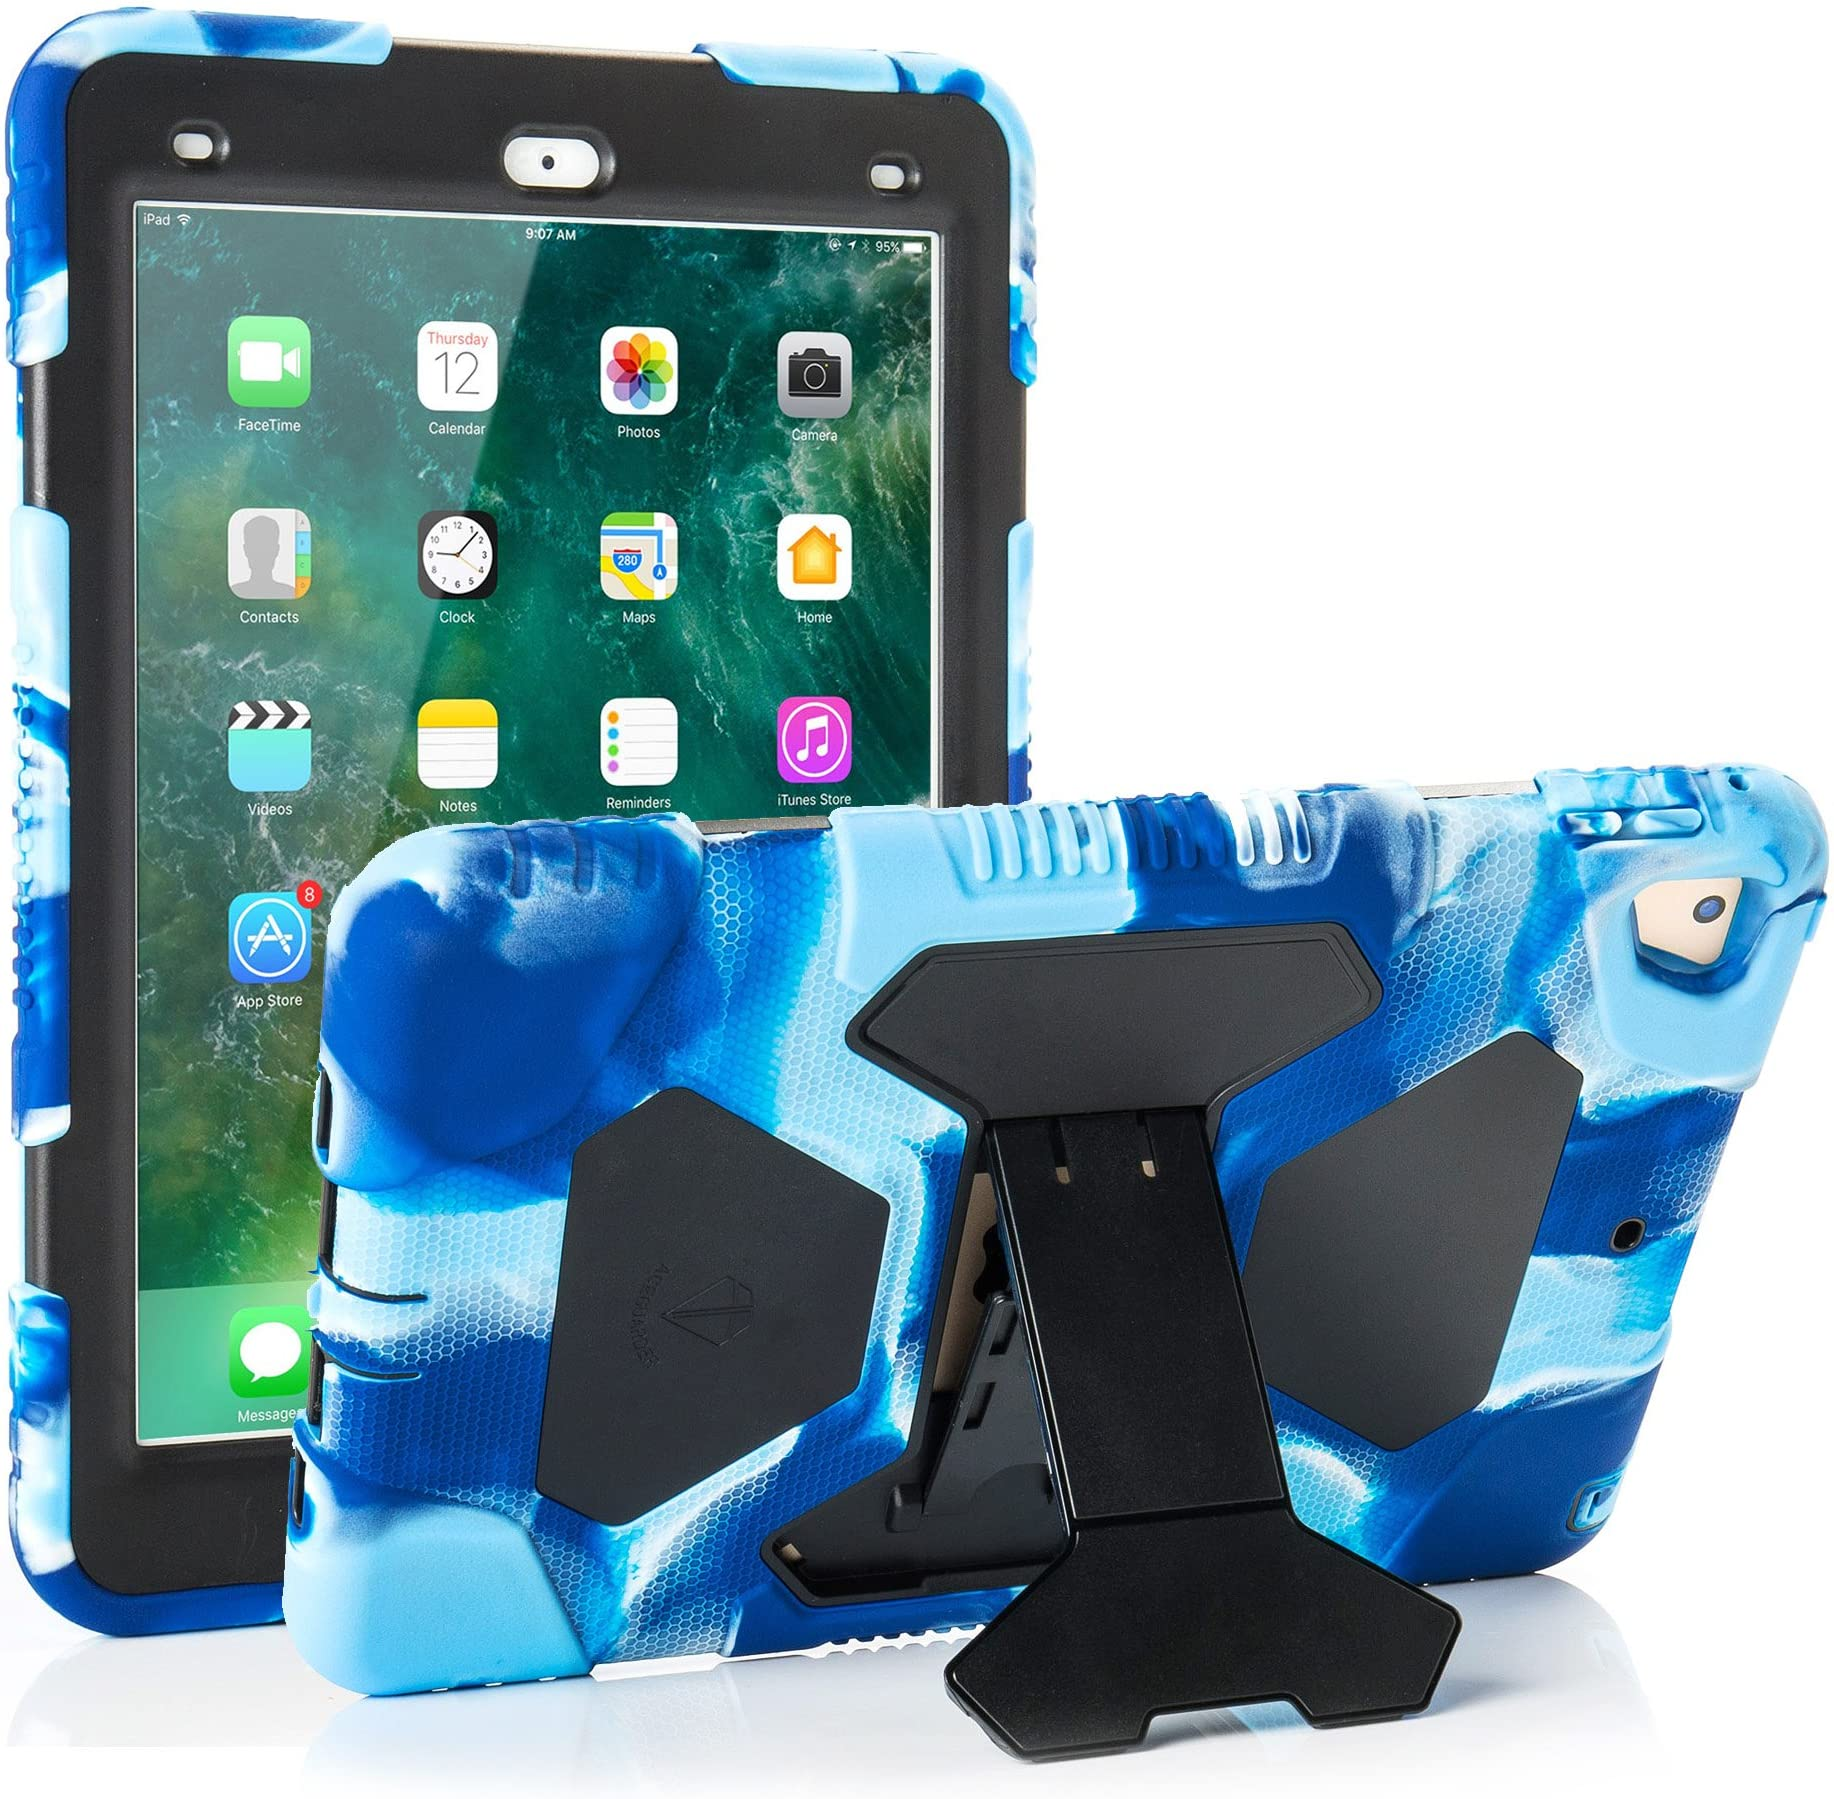 iPad 9.7 2018/2017, iPad Air 2, iPad Pro 9.7 Case for Kids Full Body Protective Shockproof Cover with Adjustable Kickstand for iPad 9.7 5th / 6th Generation (Navy/Black)